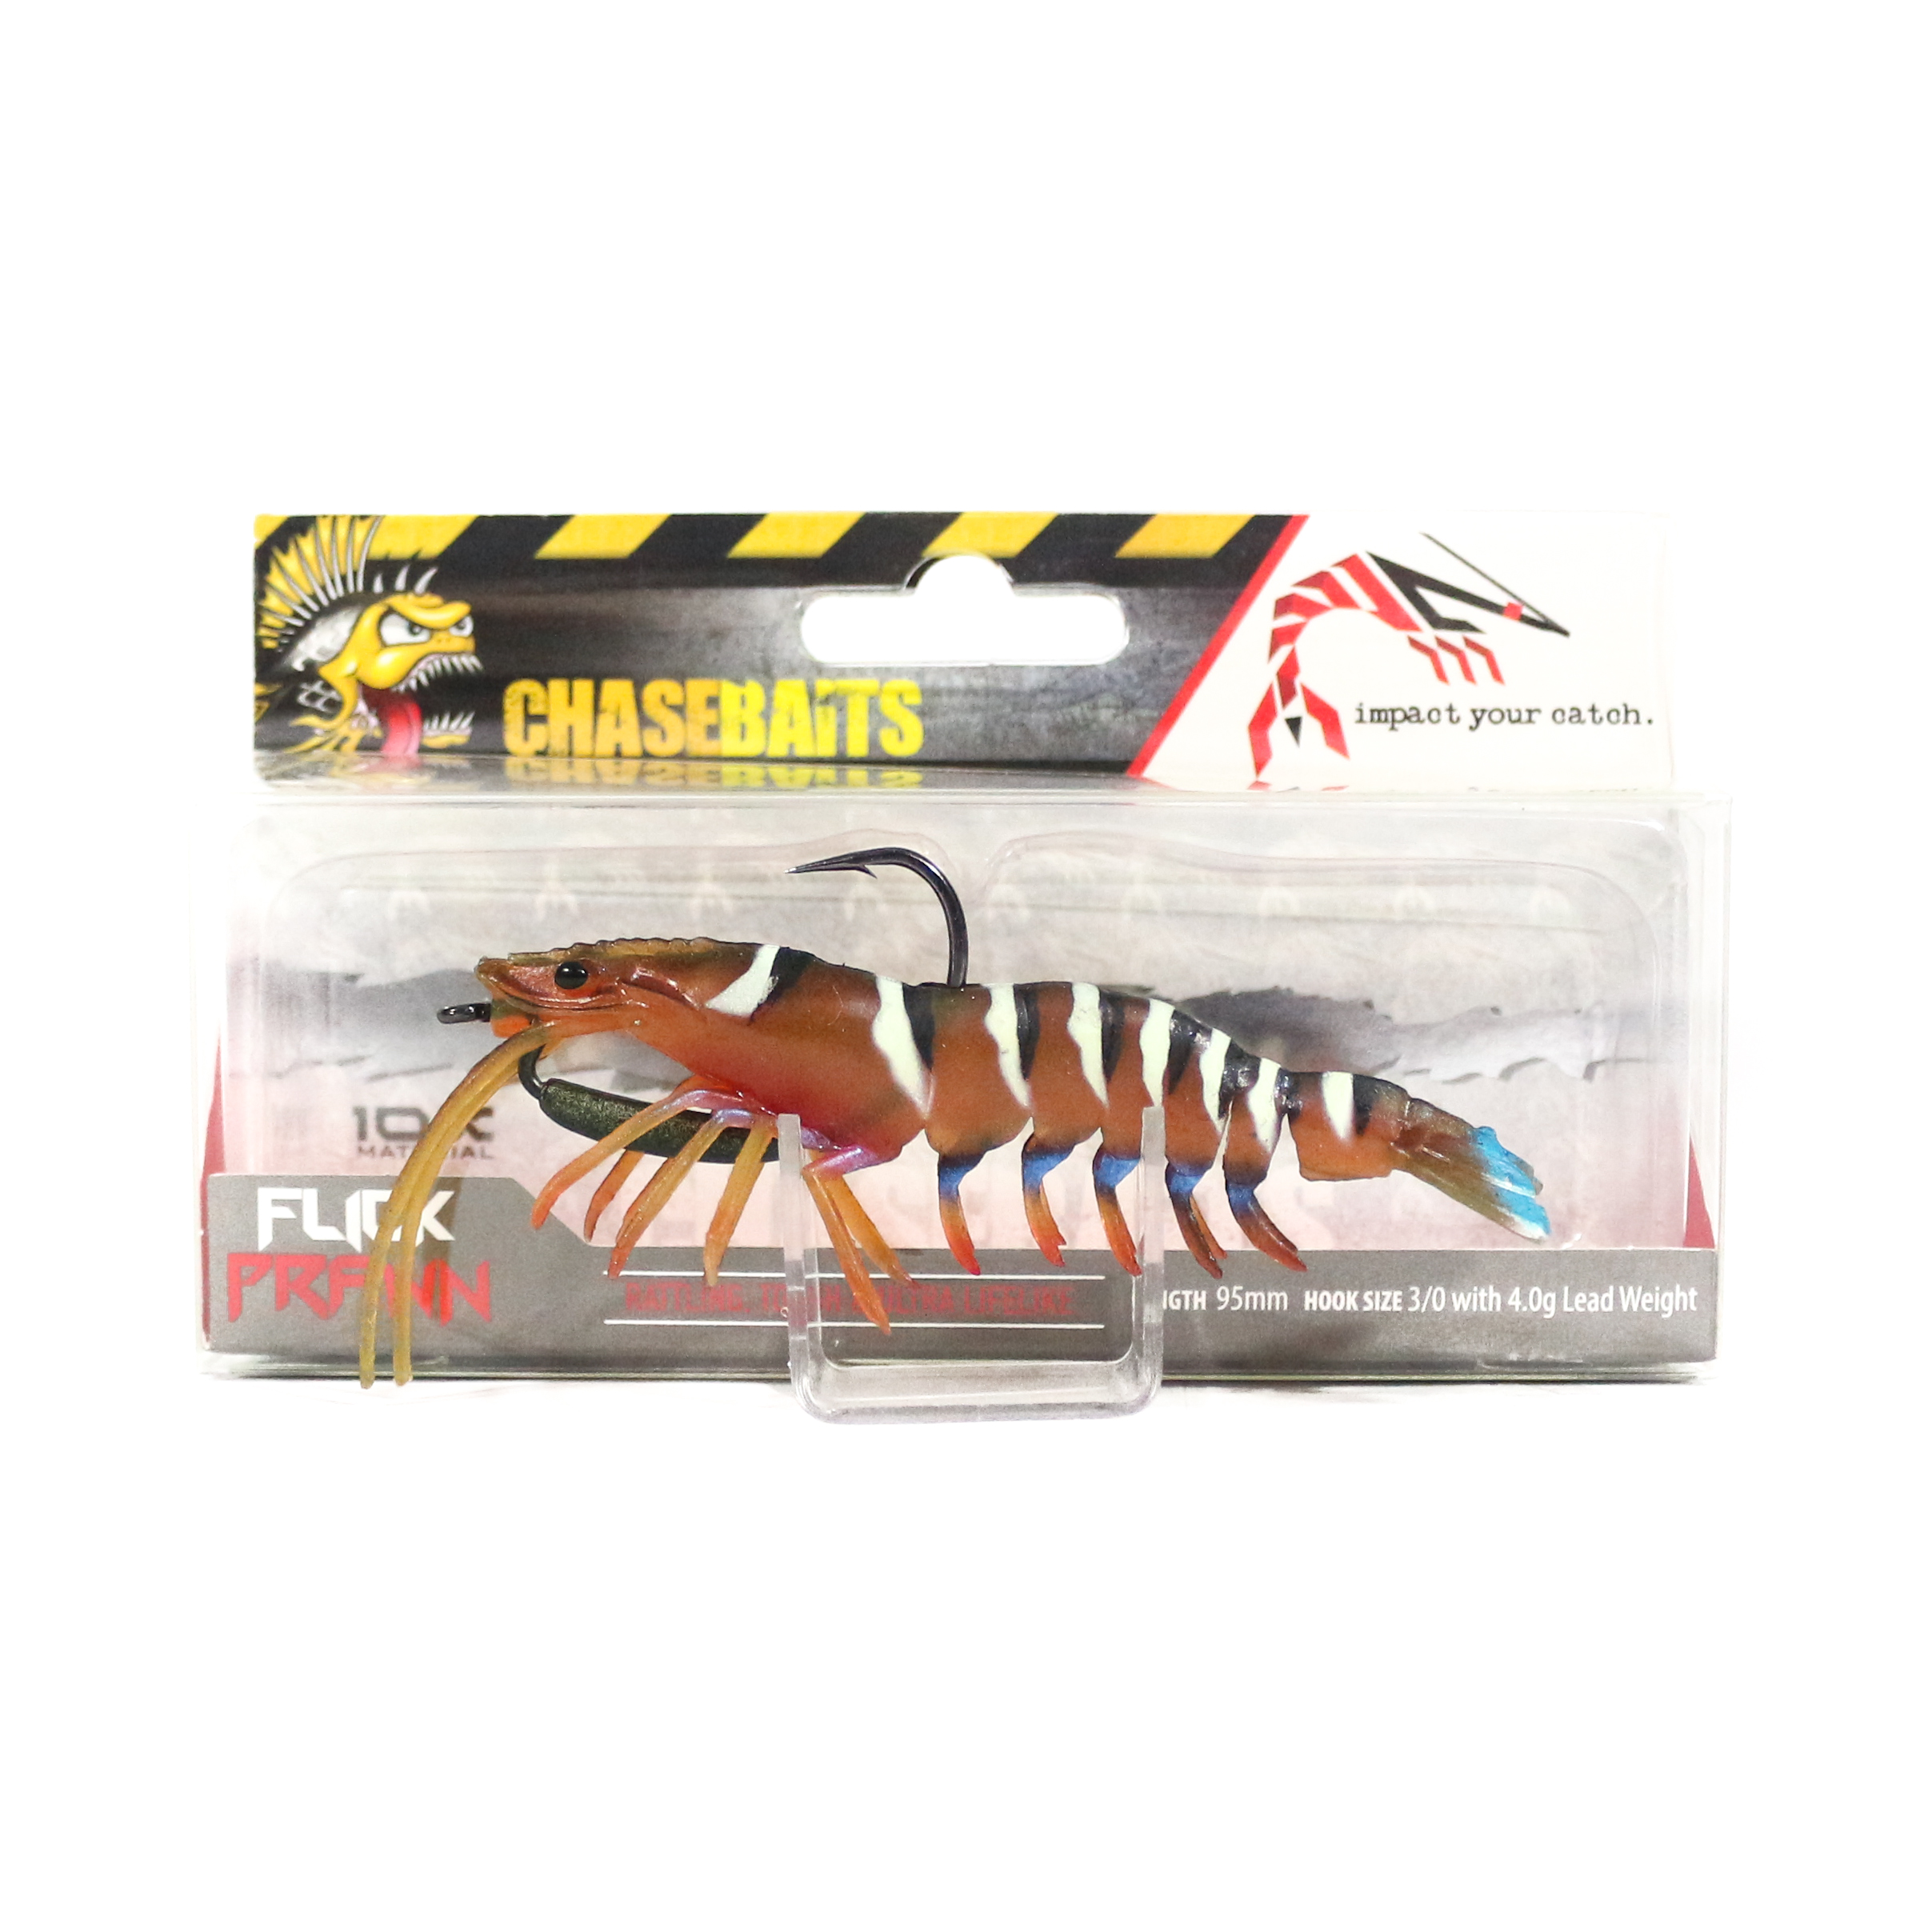 Chase Baits Soft Lure Flick Prawn 95 mm Green Prawn (4871)